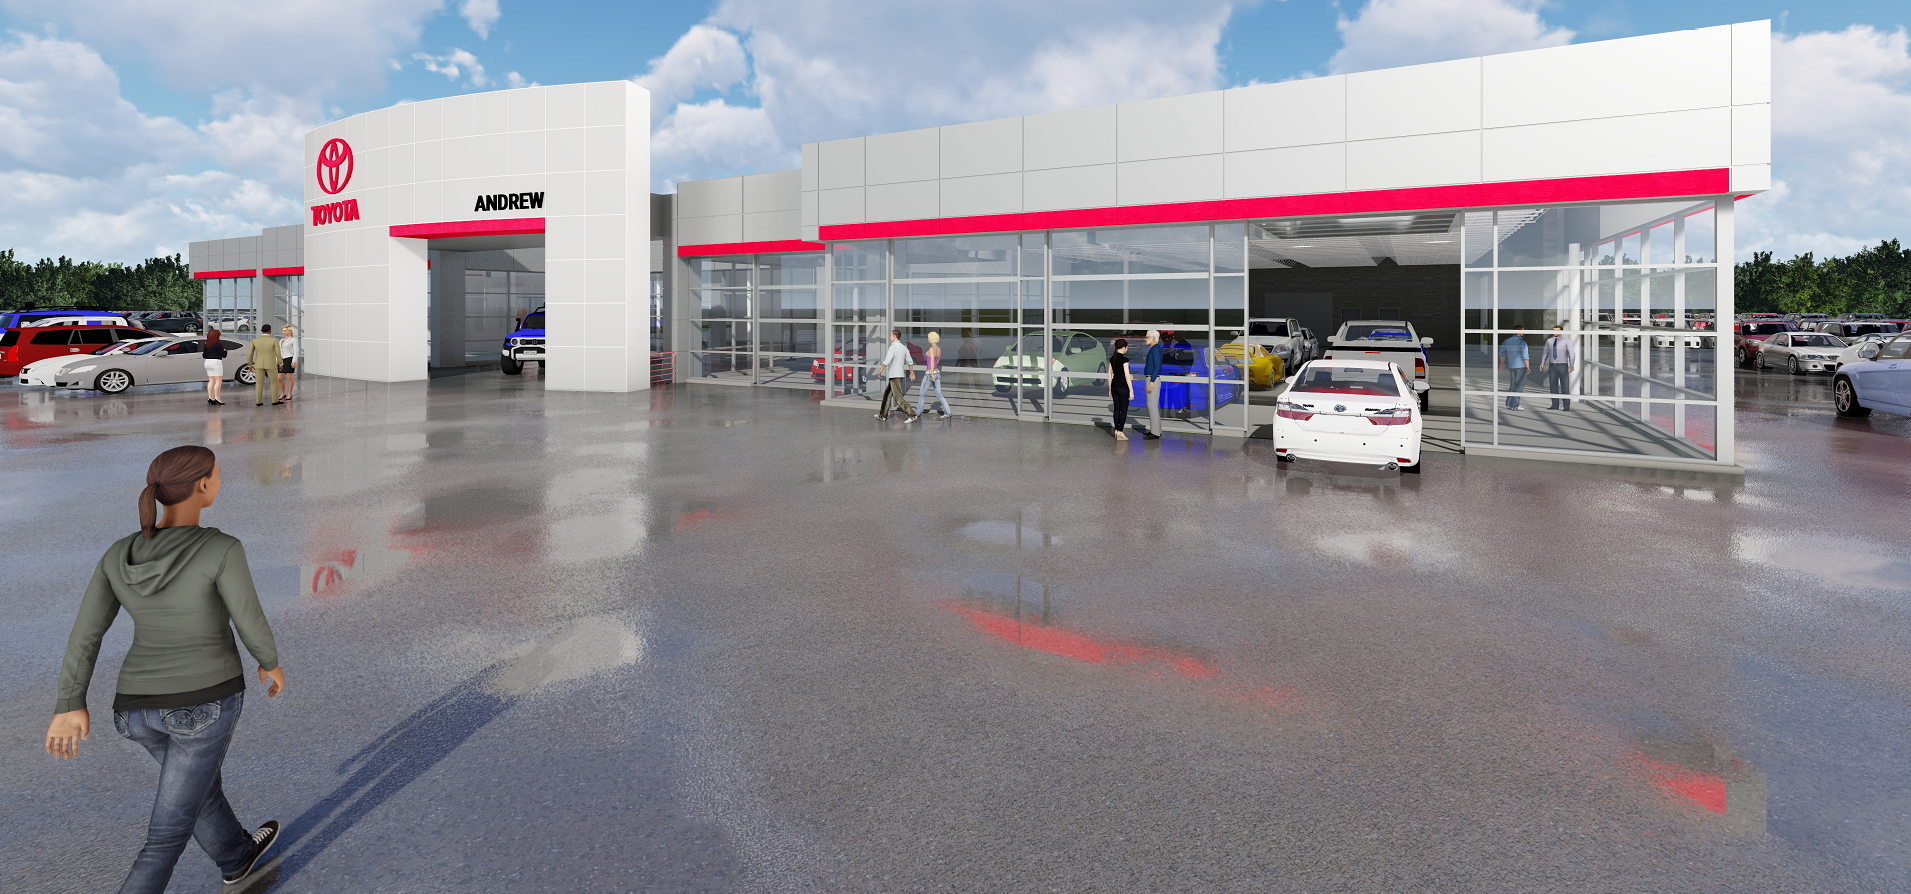 The dealership, located at 1620 West Silver Spring Drive, will be expanding its service area by over 35%. A fourth service lane entrance is to be added as well as 12 new state-of-the-art technician bays, environmentally friendly lighting, and a special vehicle delivery area. Additional administrative office space will also be included in the expansion.